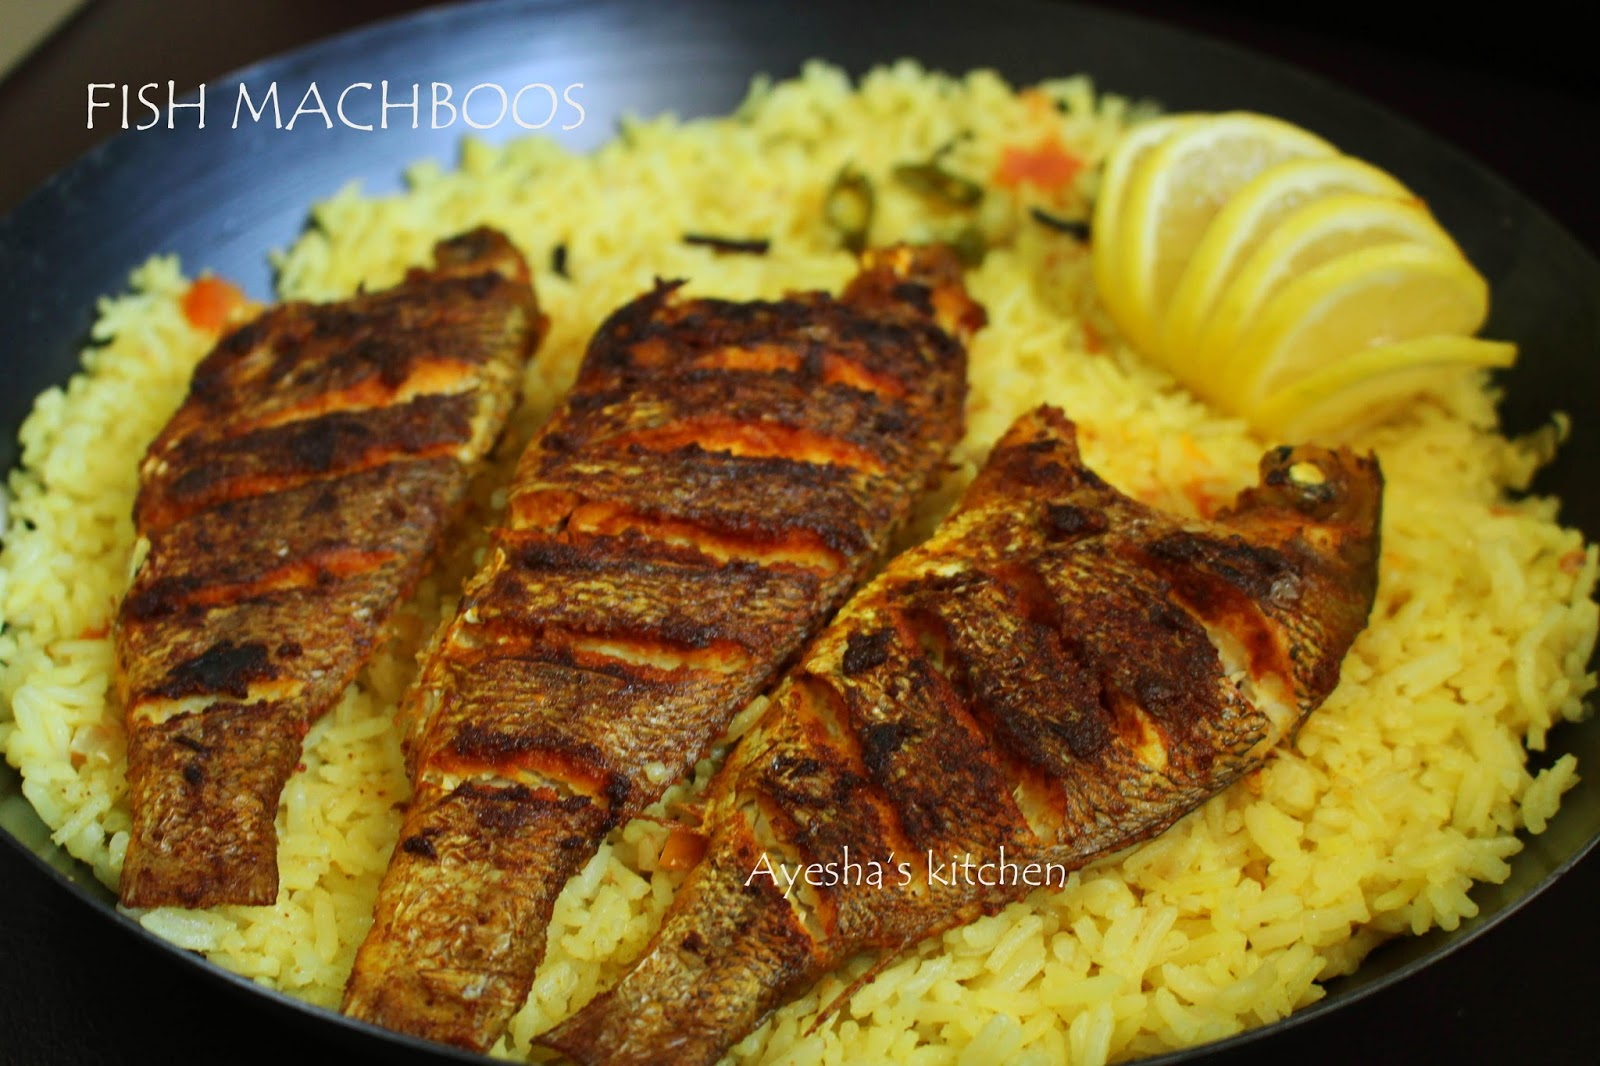 Indian food recipes indian recipes desi food desi recipes majbous machbous fish recipes rice recipes forumfinder Gallery